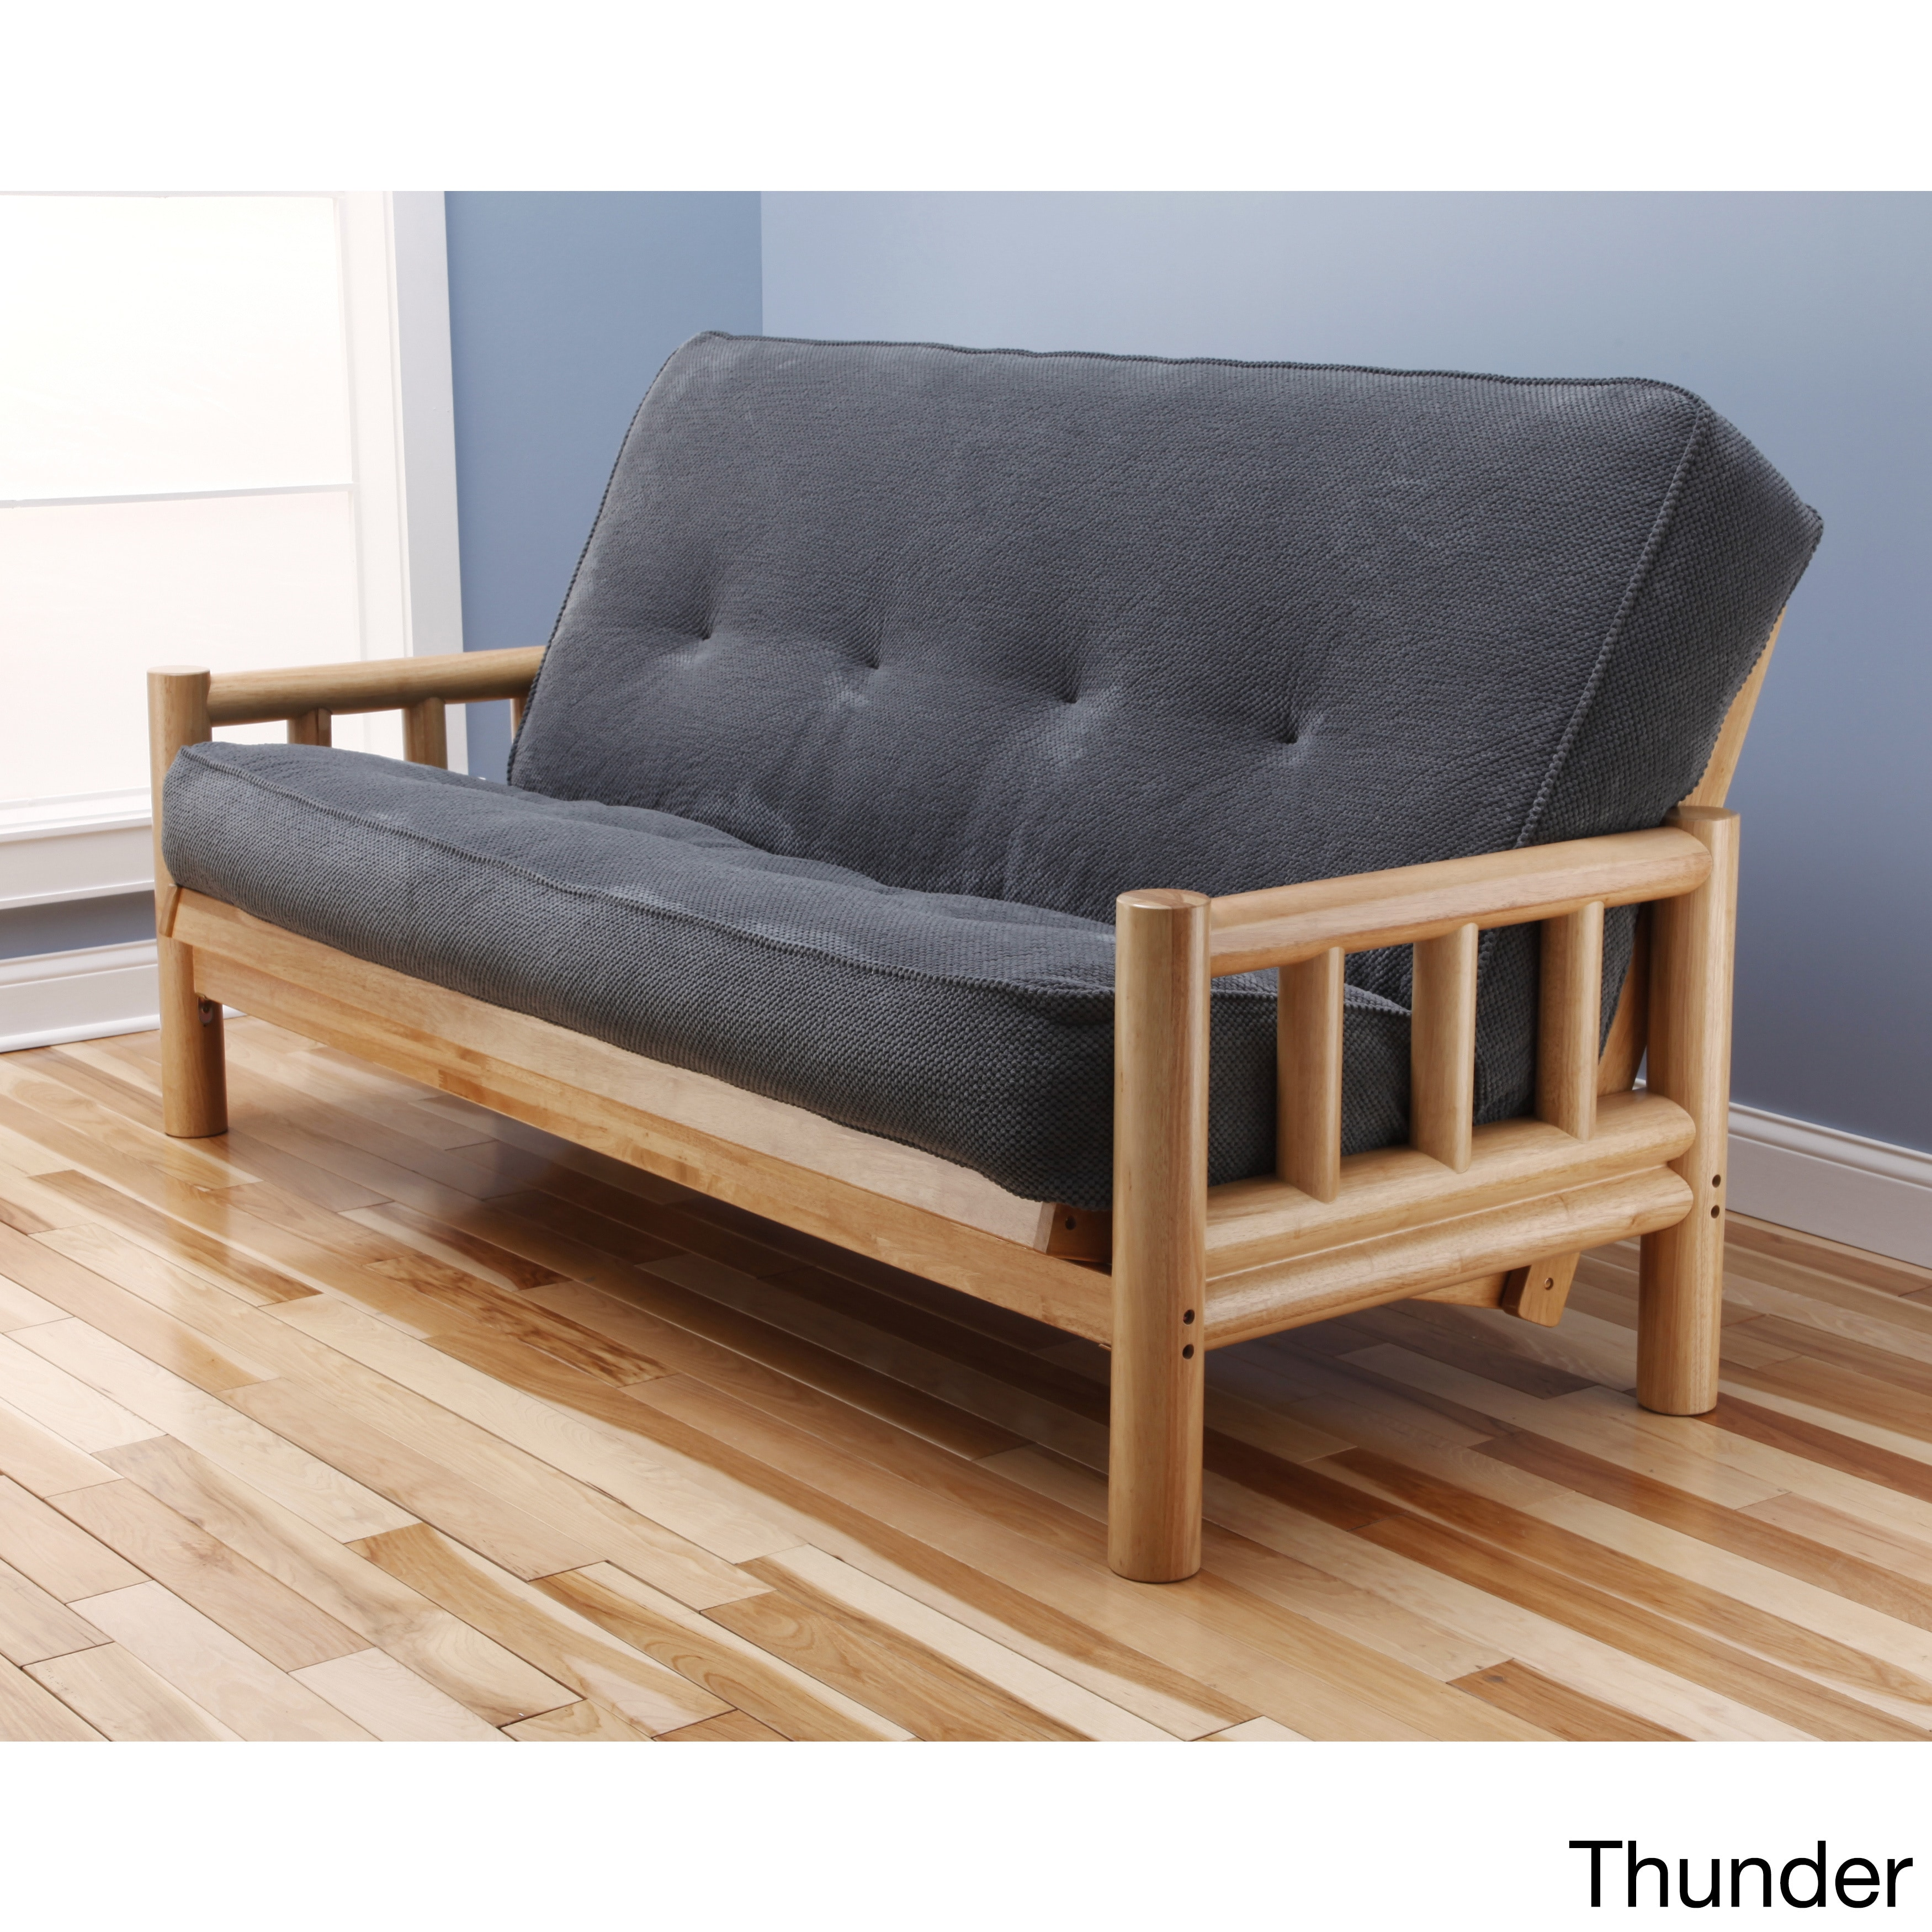 Somette  Lodge Full-Size Futon Set with Marmont Mattress